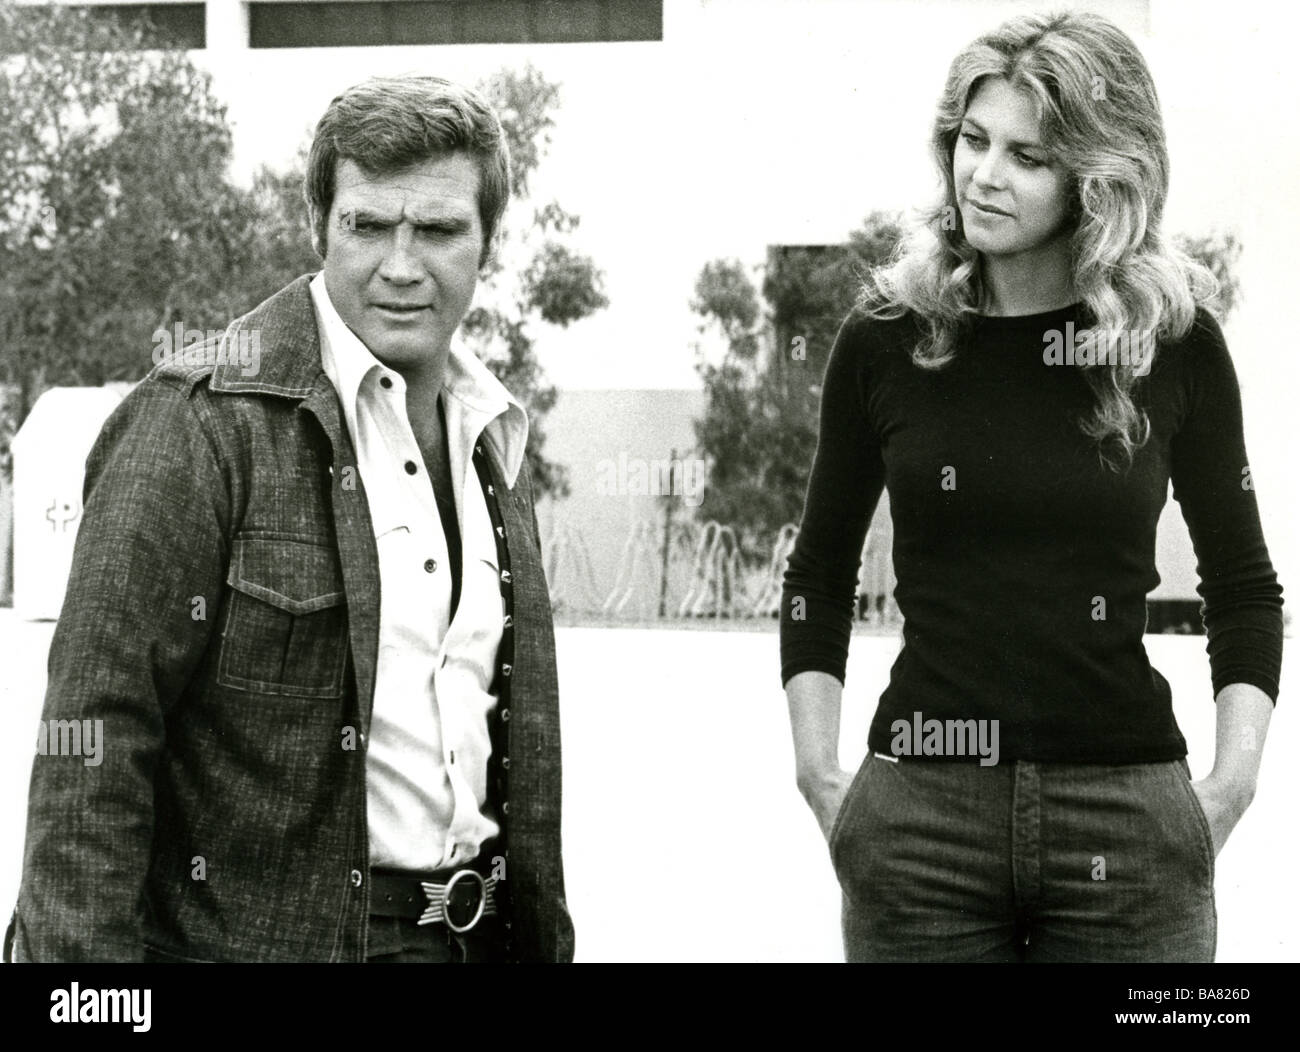 Six Million Dollar Man The Bionic Woman Us Tv Series With Lee Majors As Steve Austin And Lindsay Wagner As Jaime Sommers